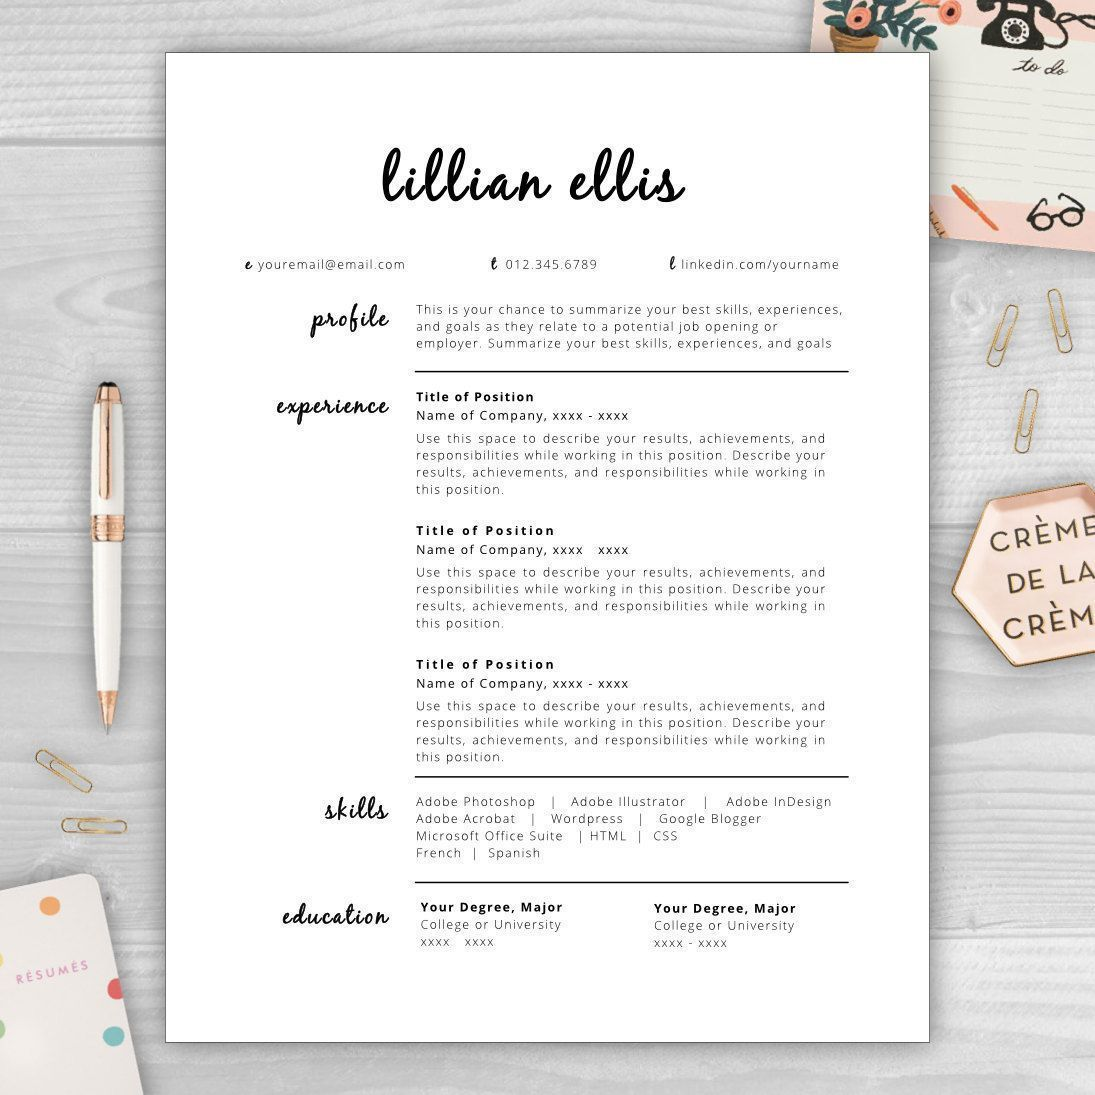 modern resume template cv engineering examples computer science student summary interior design format